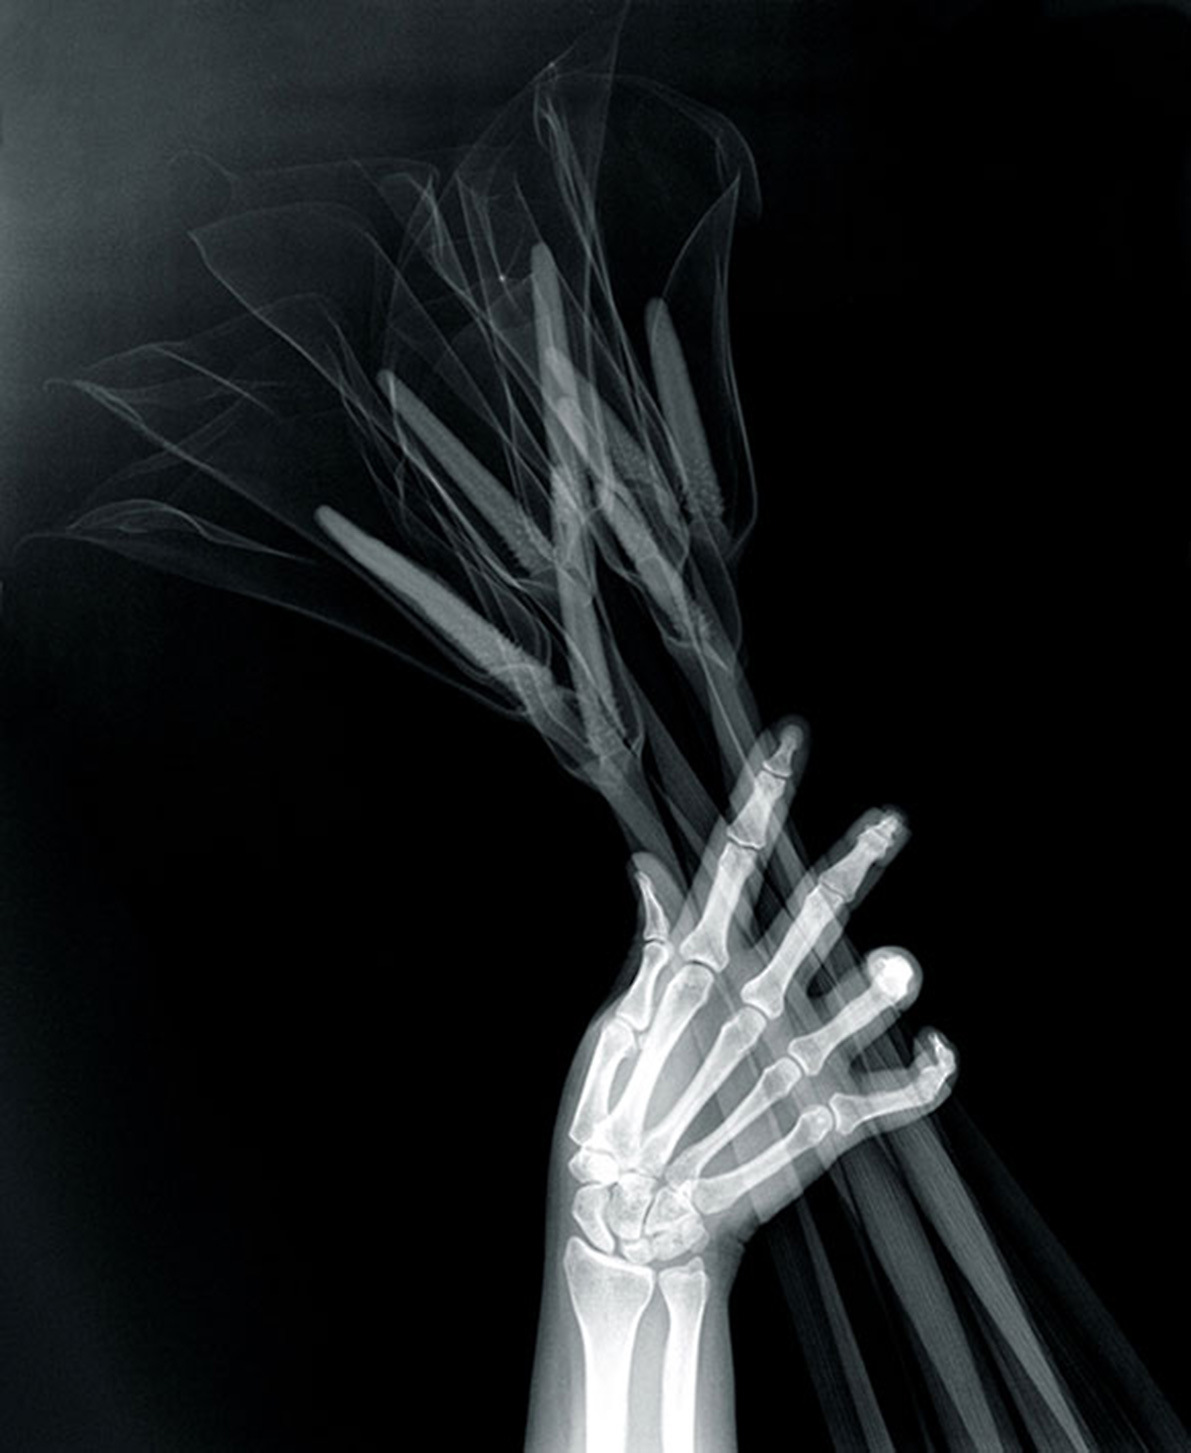 Grotesque & Arabesque (Hand with Callas), lambda duratrans, x-ray, light box, 42,5 x 52,5 cm